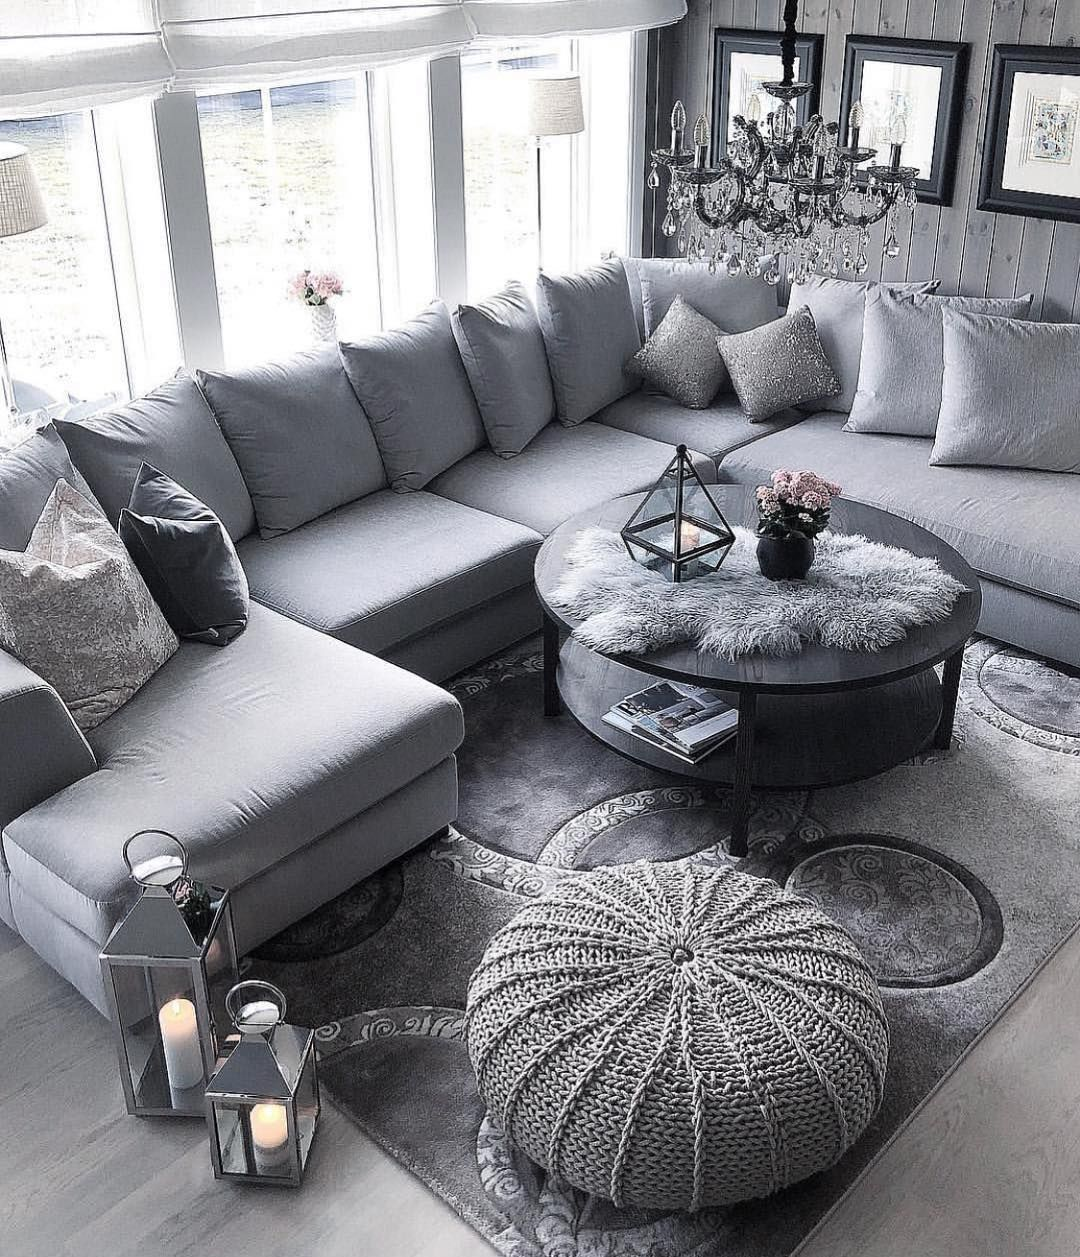 Fascinating 25 Home Decor Sofa Design